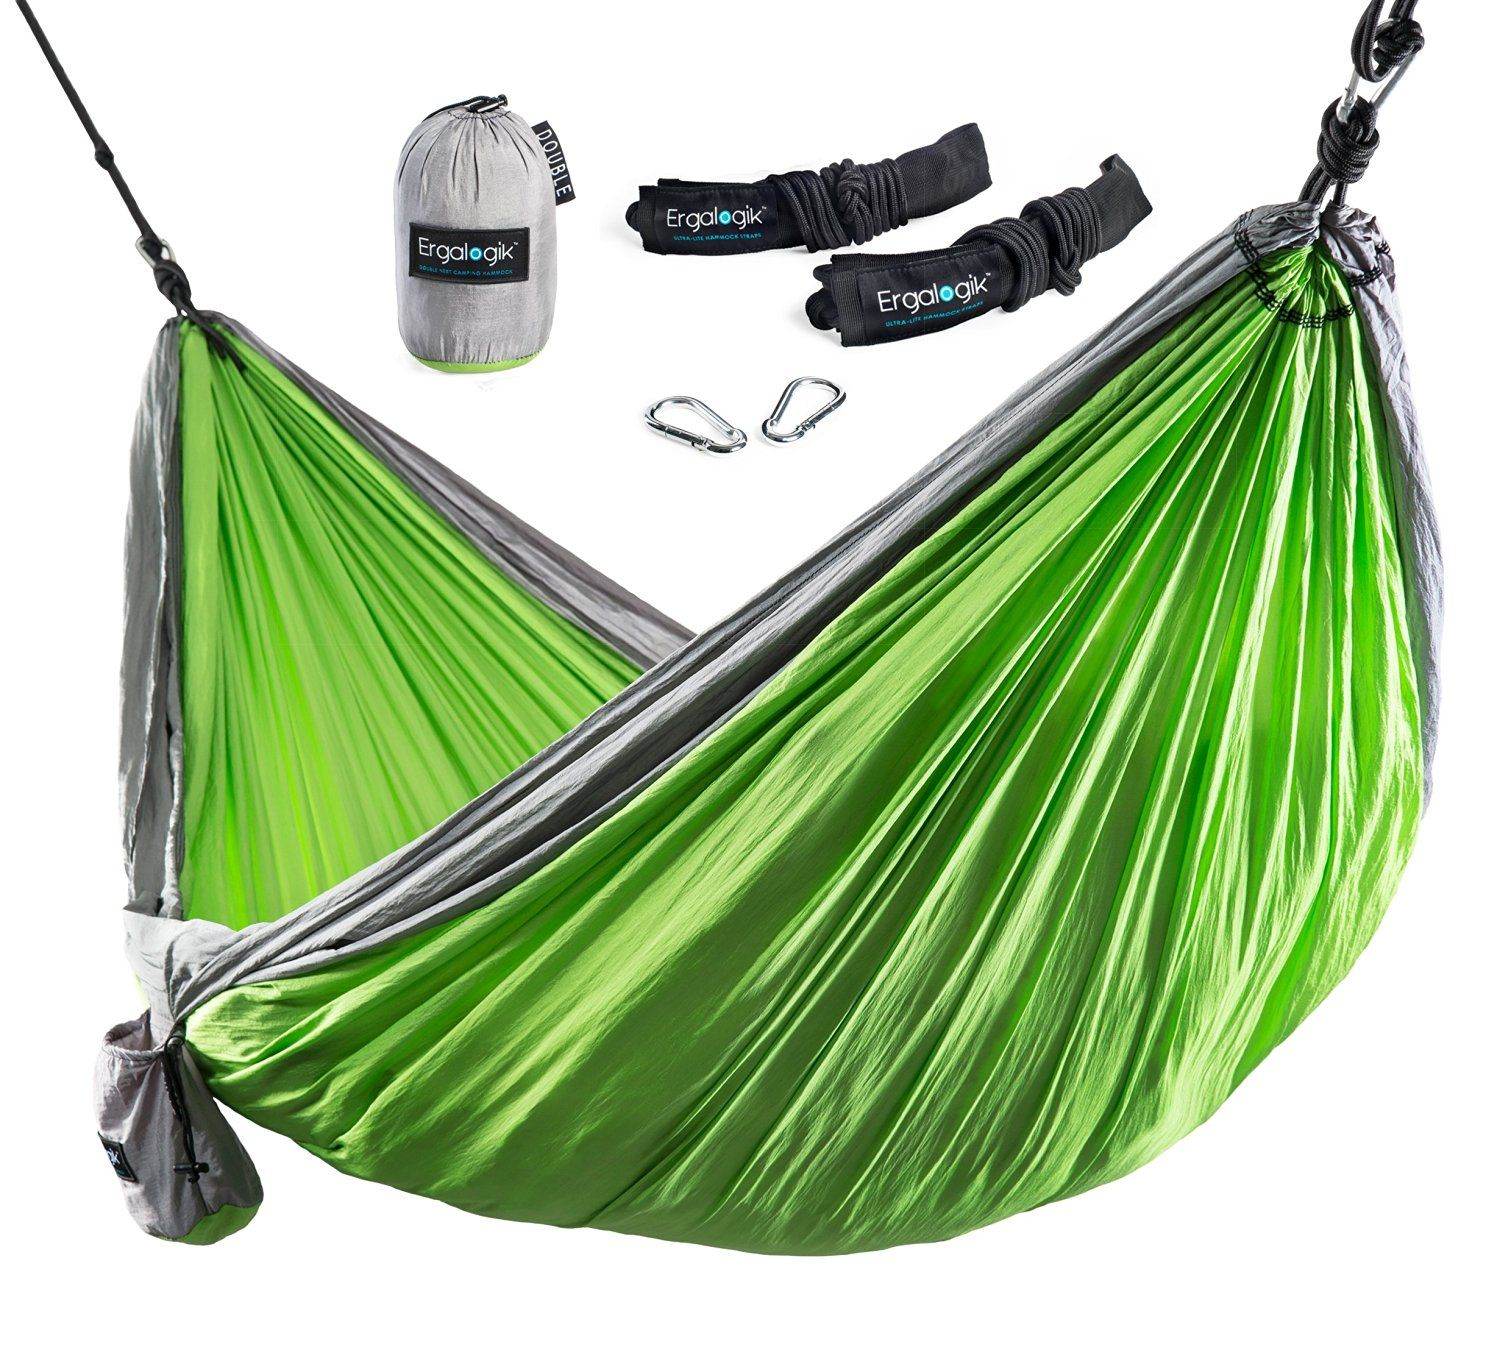 Ergalogik Tree Friendly Double Nest Camping Hammock W Premium Hammock Straps 400lbs Capacity 10 Feet 6 Inches X 6 Feet 6 In Hammock Camping Hammock Outdoor